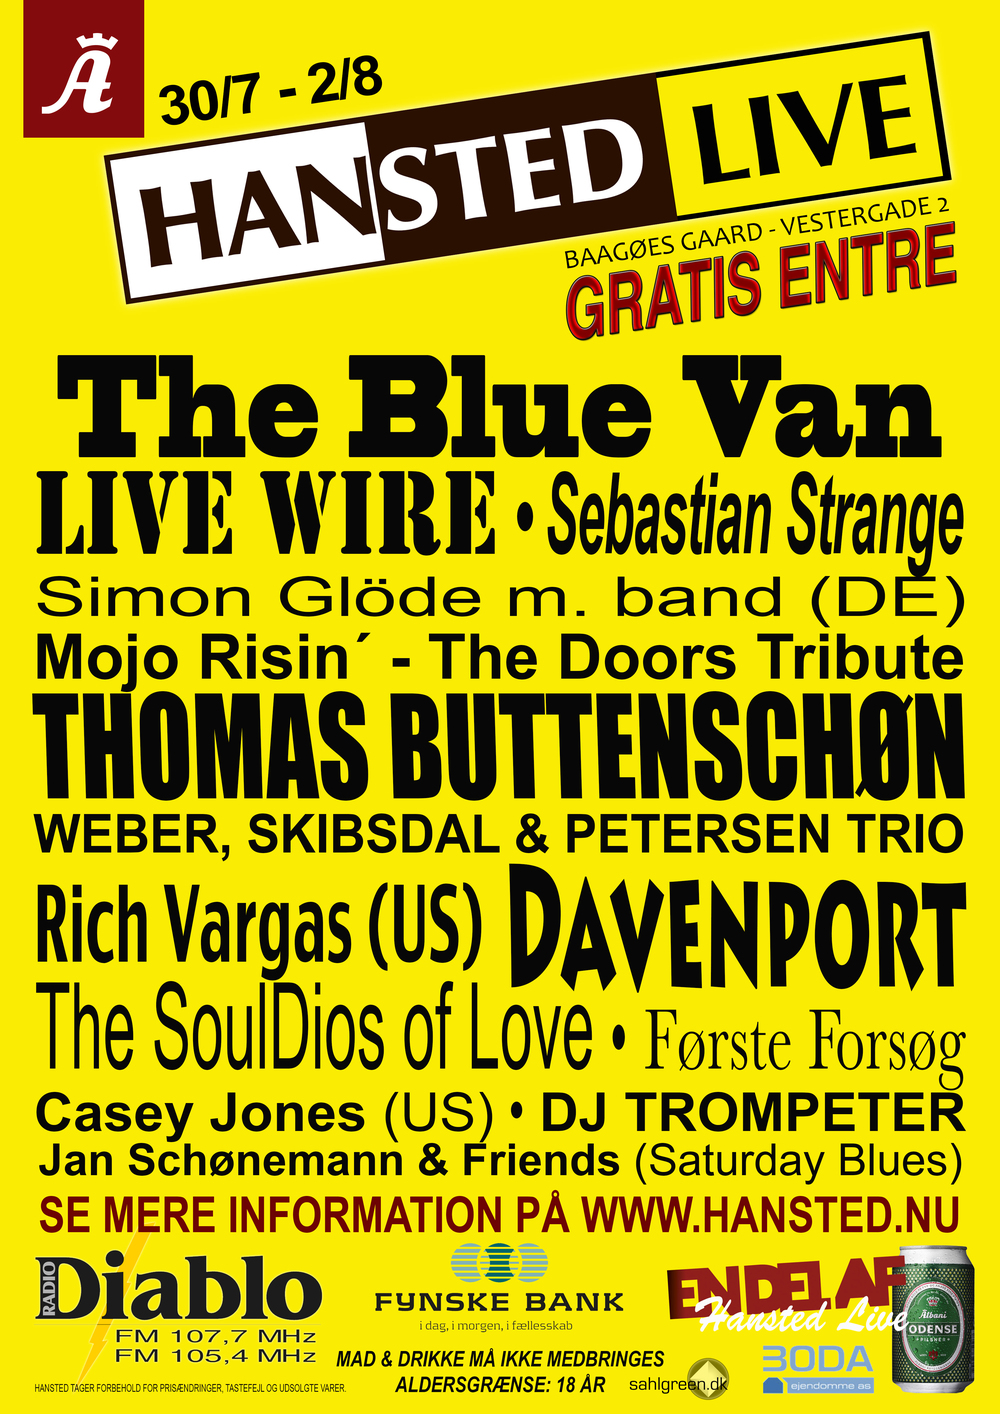 Hansted Live Plakat 2014.jpg